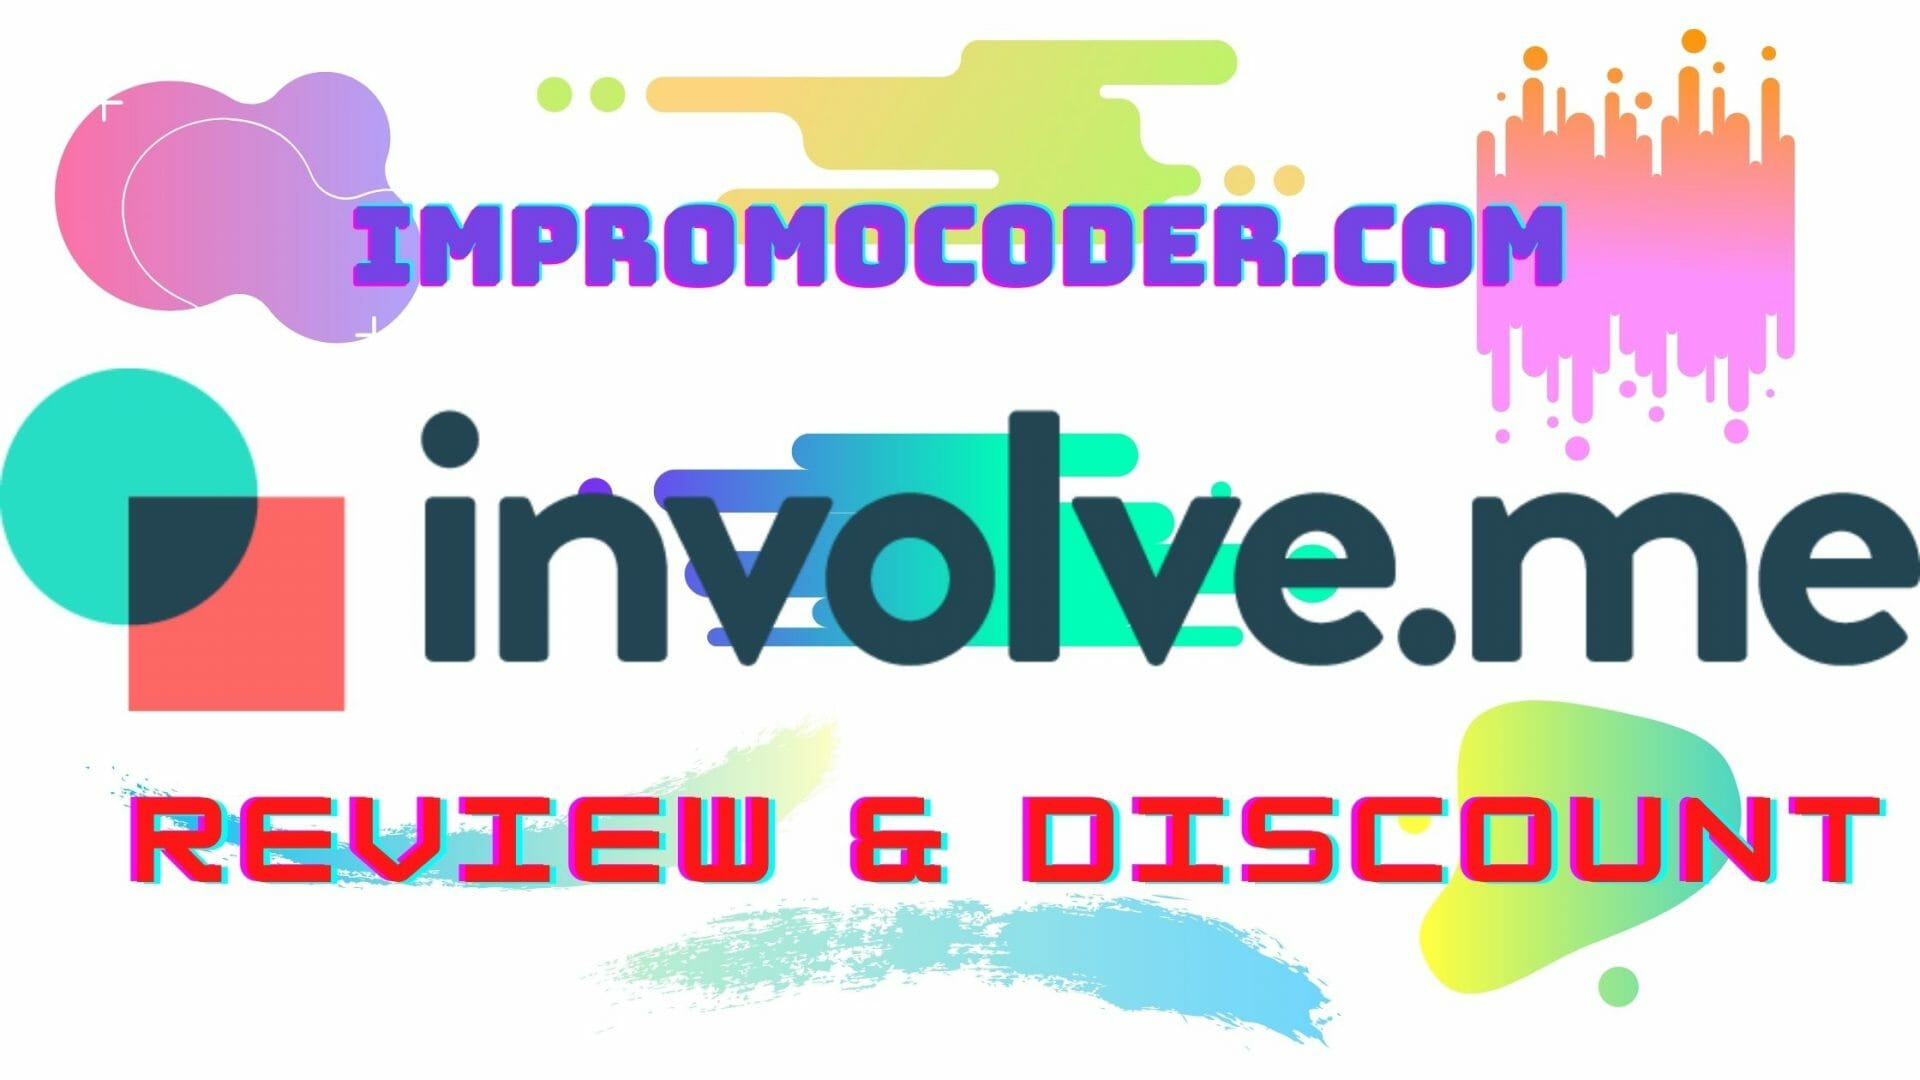 involve me review and discount on IMPromoCoder.com